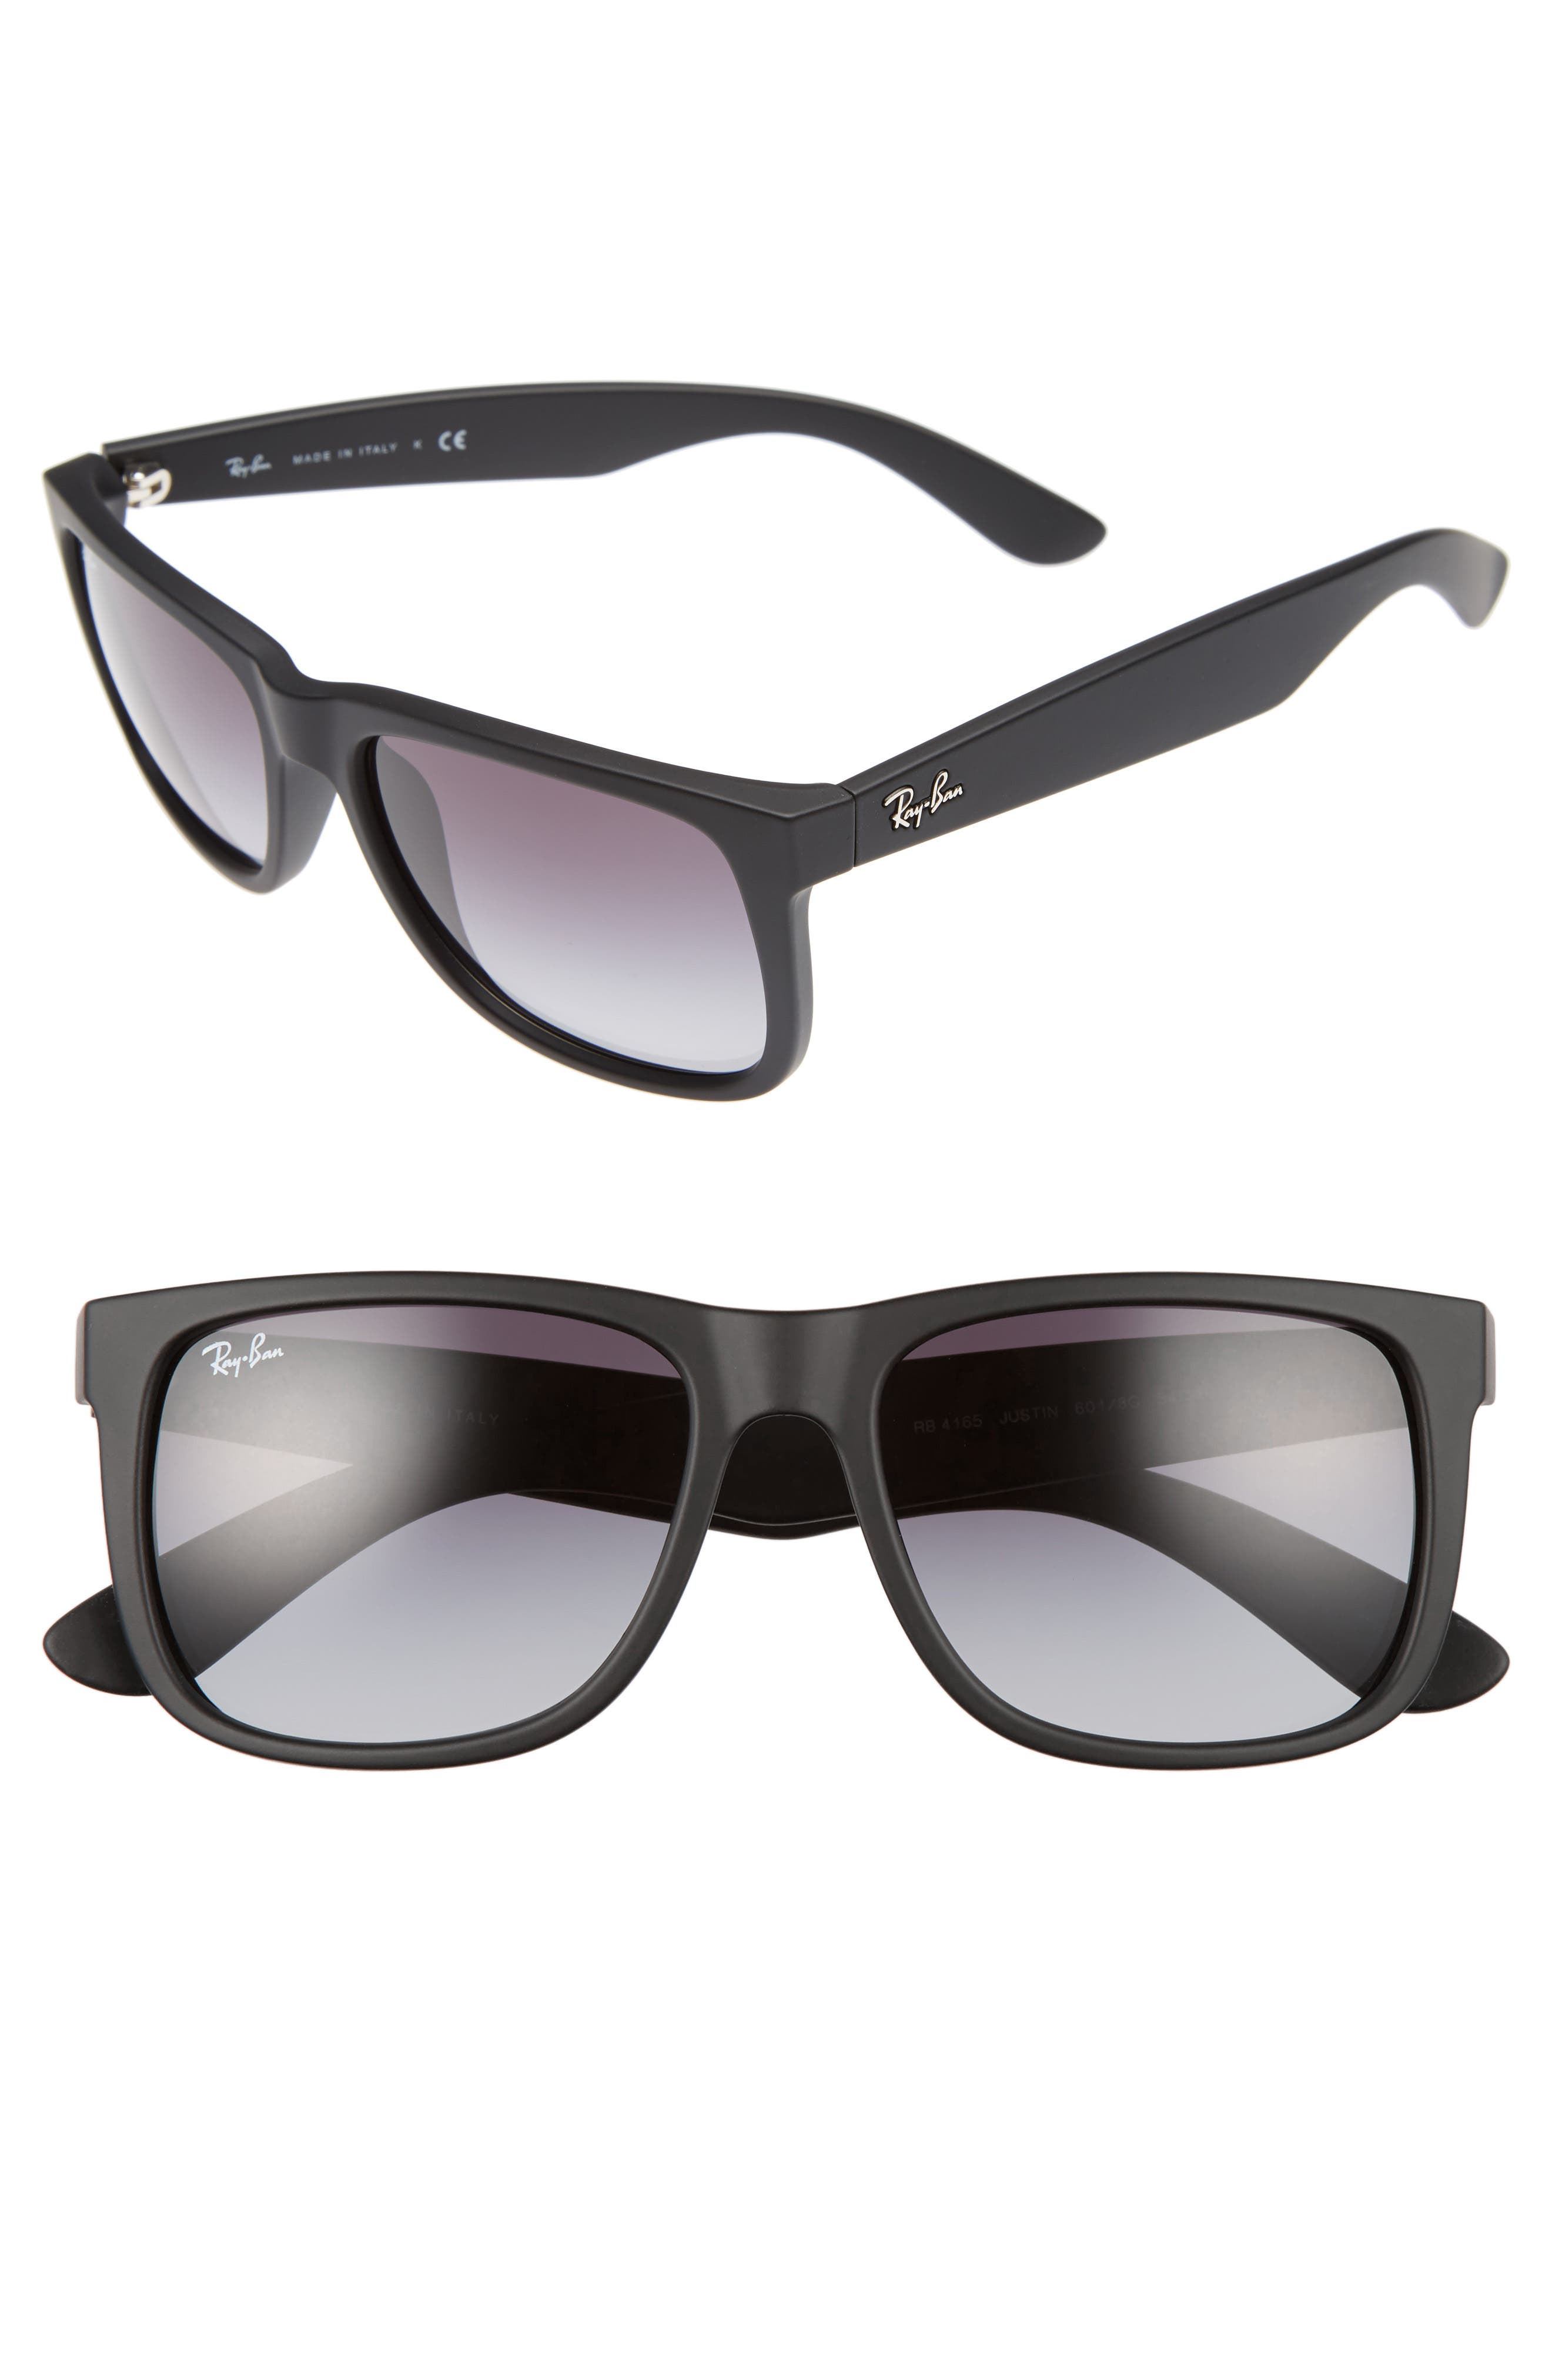 Youngster 54mm Sunglasses,                             Alternate thumbnail 2, color,                             BLACK